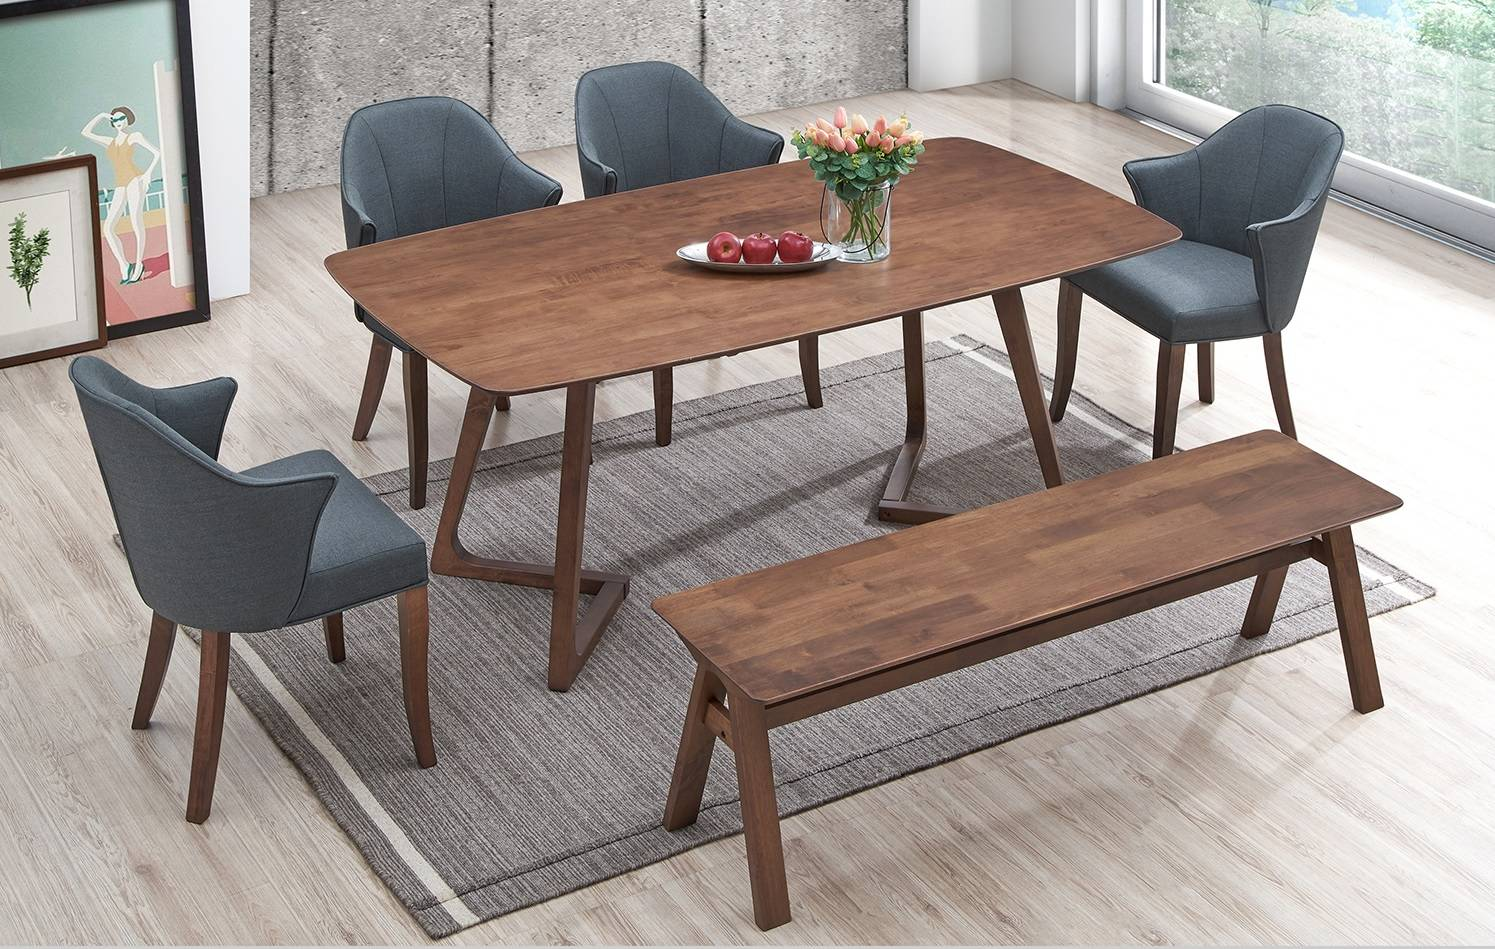 E Home Furniture Solid Rubber Wood Stylish Dining Table Rectangle Dining Table